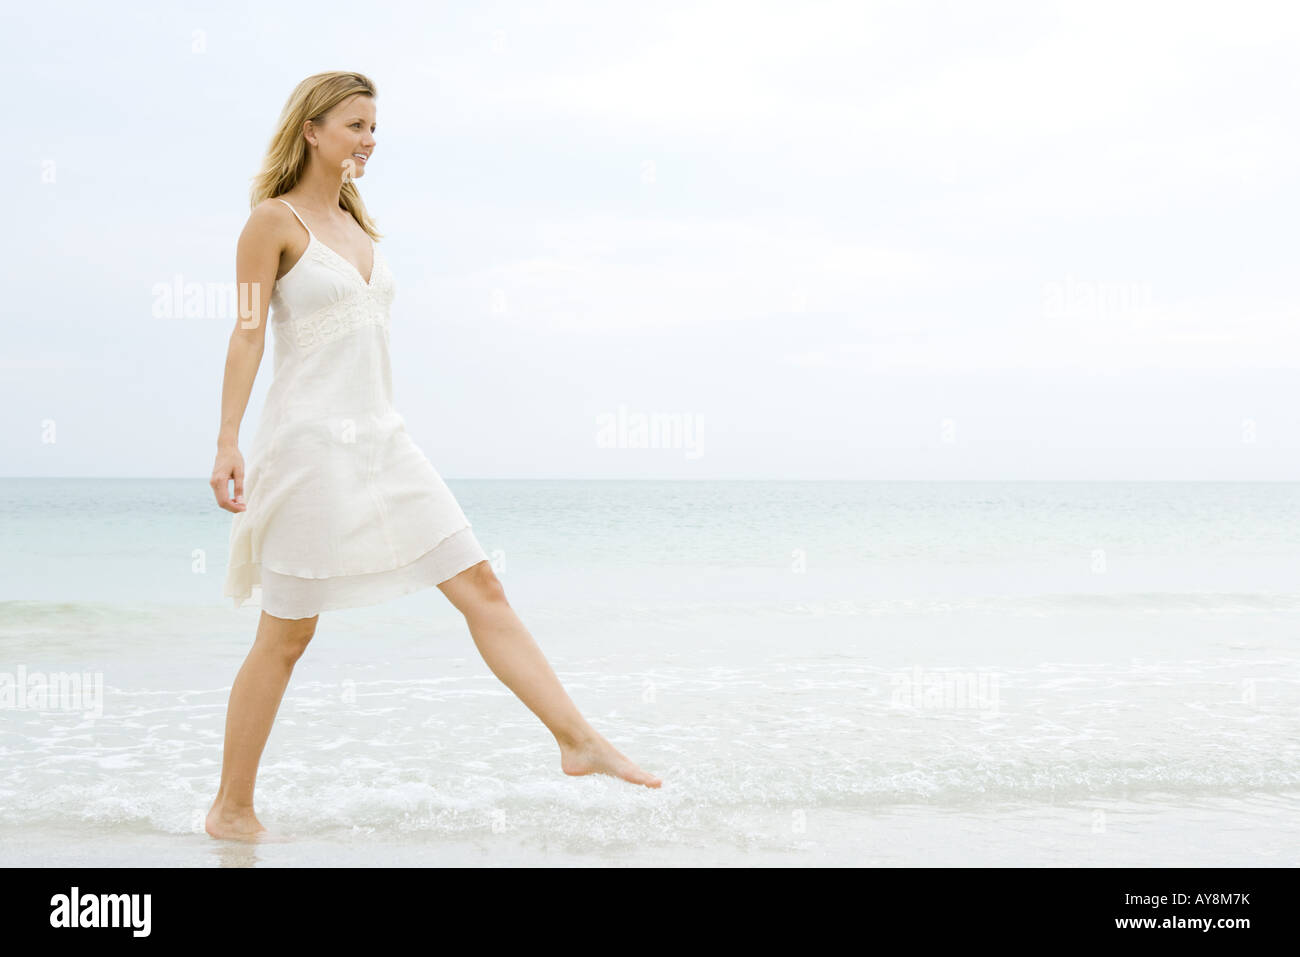 Young woman in sundress taking large step as she walks in shallow water on beach, full length - Stock Image